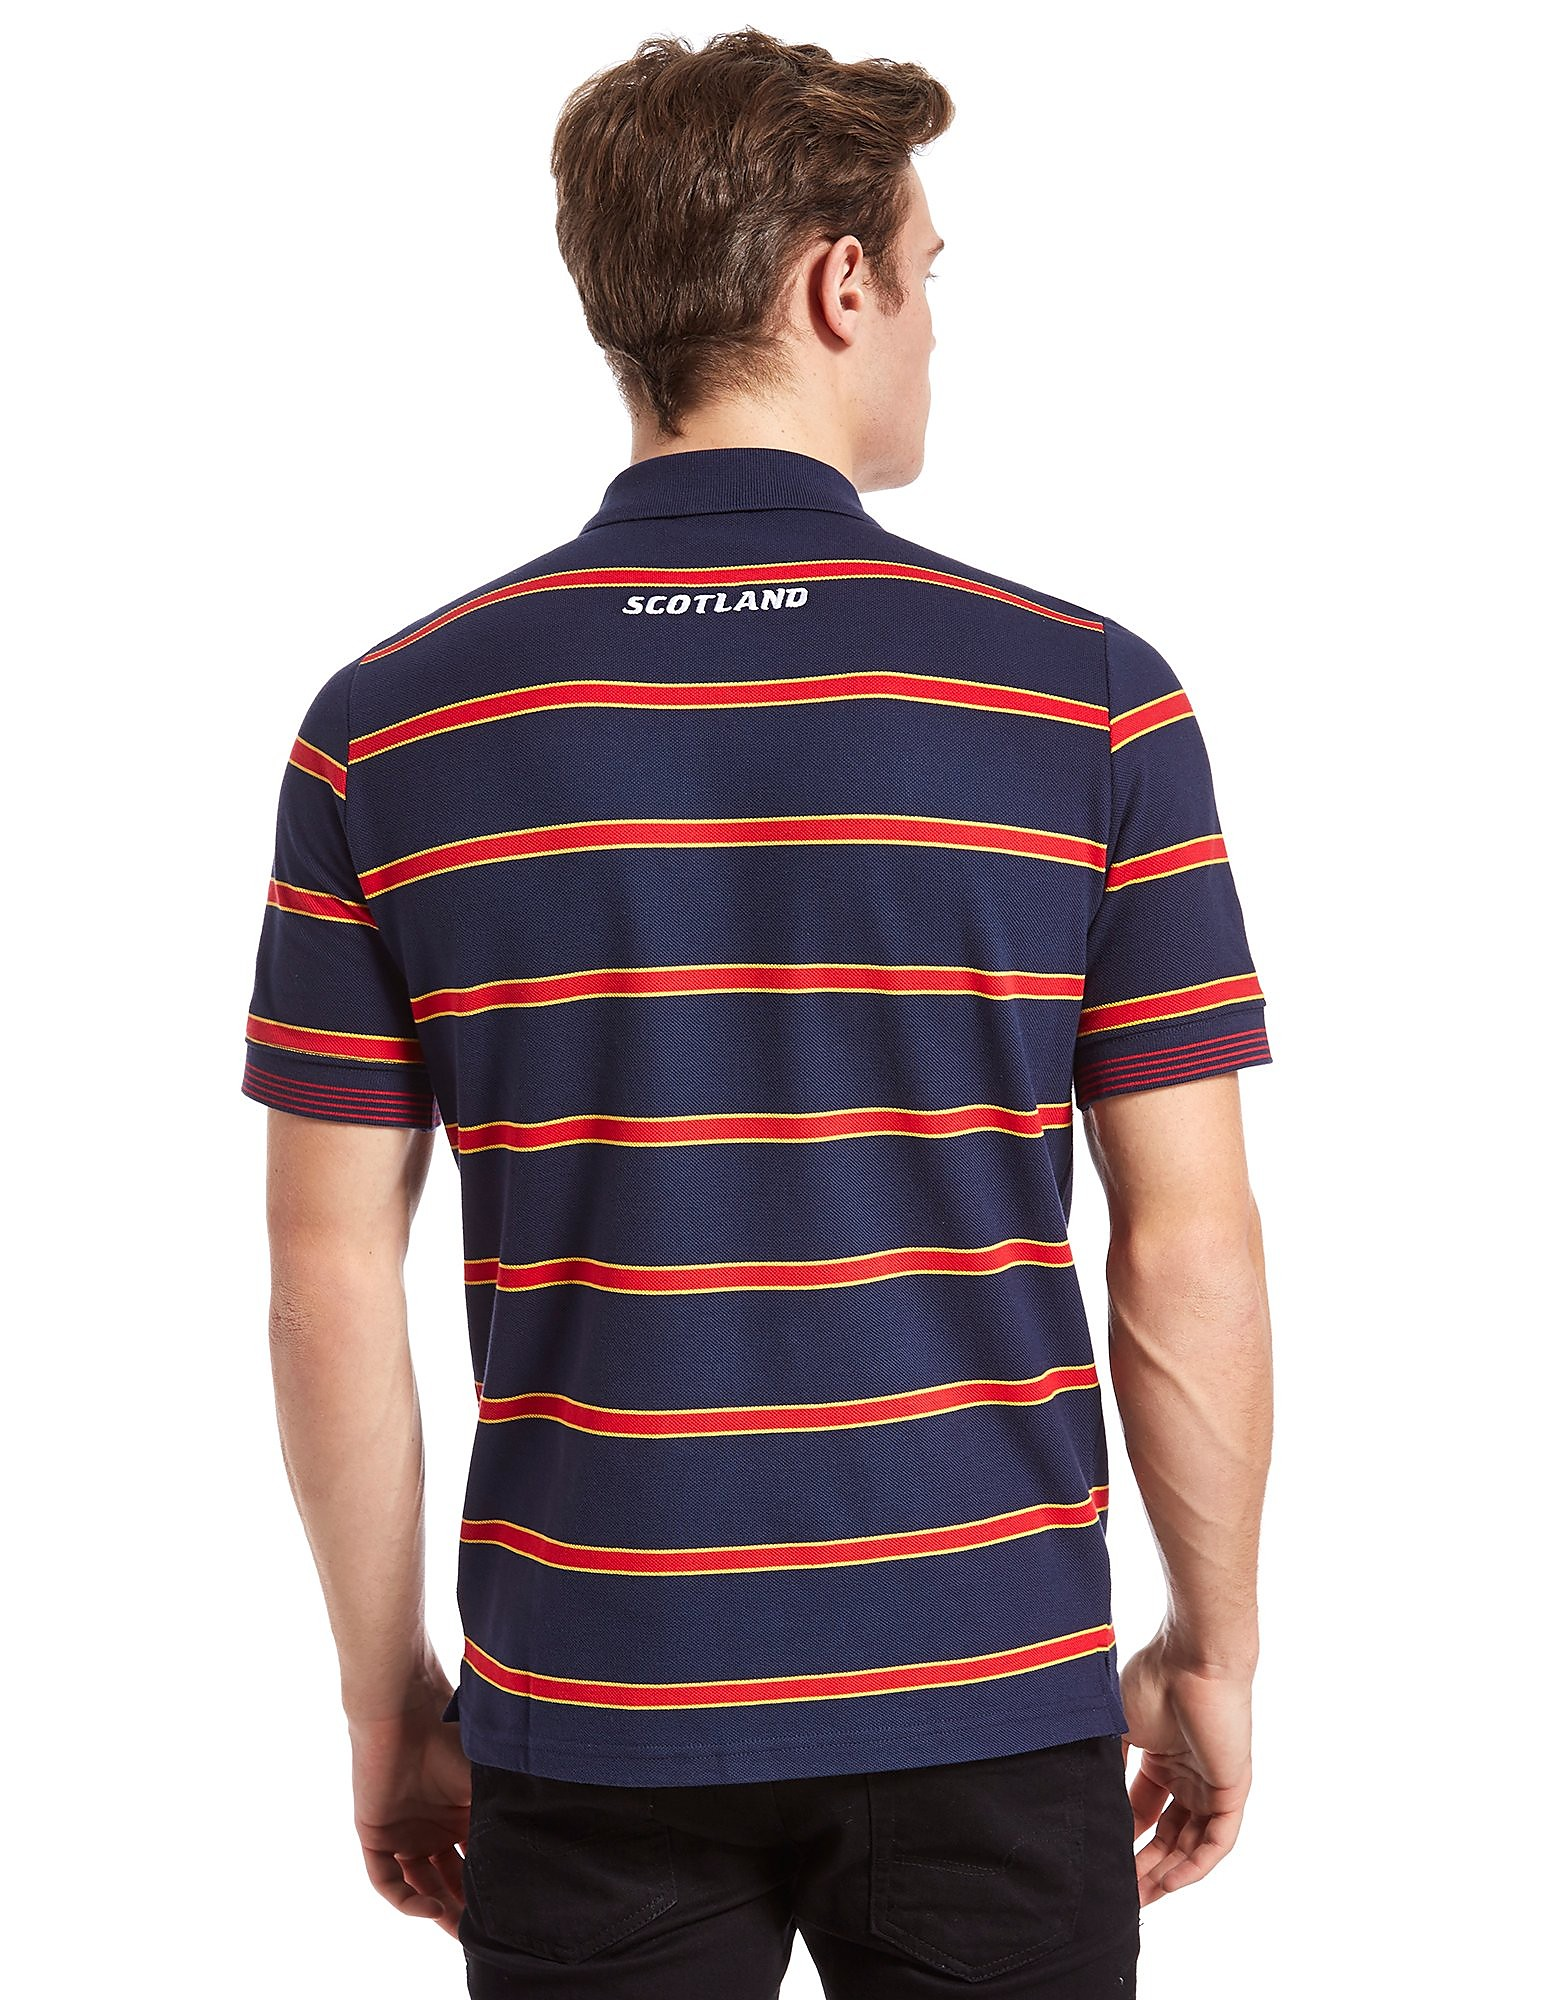 Macron Scotland Rugby Striped Polo Shirt